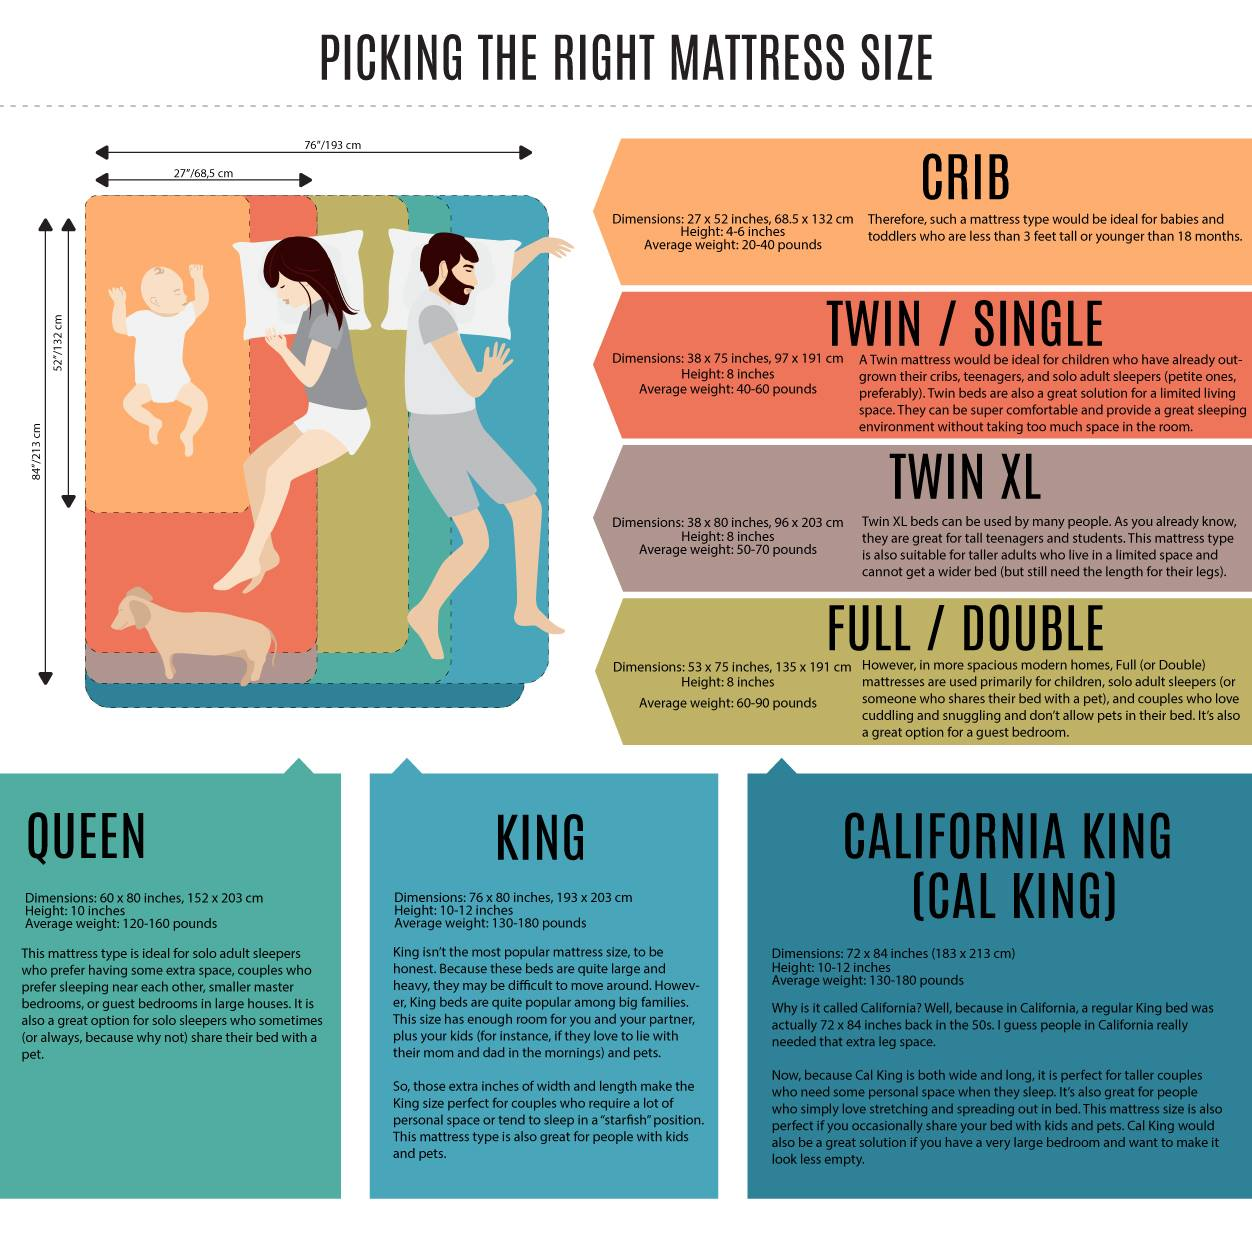 Standard Mattress Sizes Dimensions Queen King Full